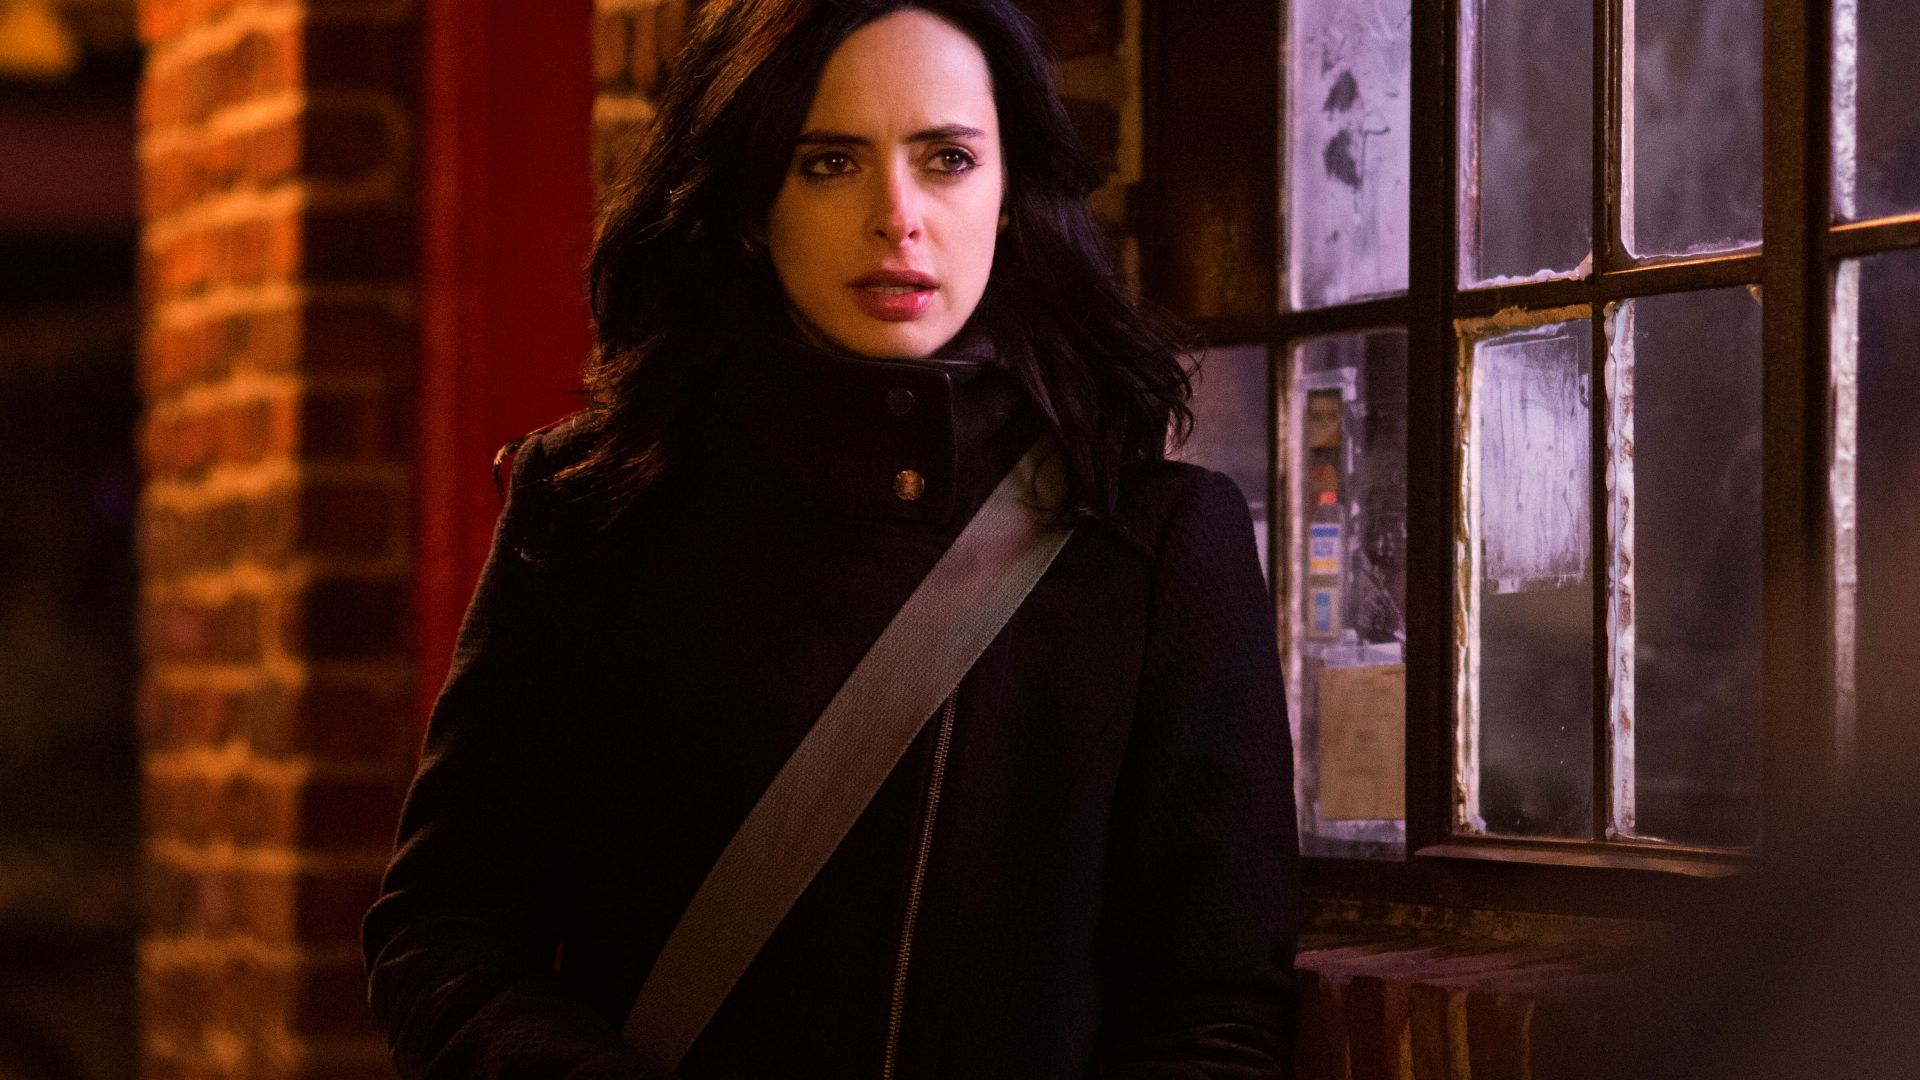 Jessica Jones, Best TV series, Krysten Ritter (horizontal)